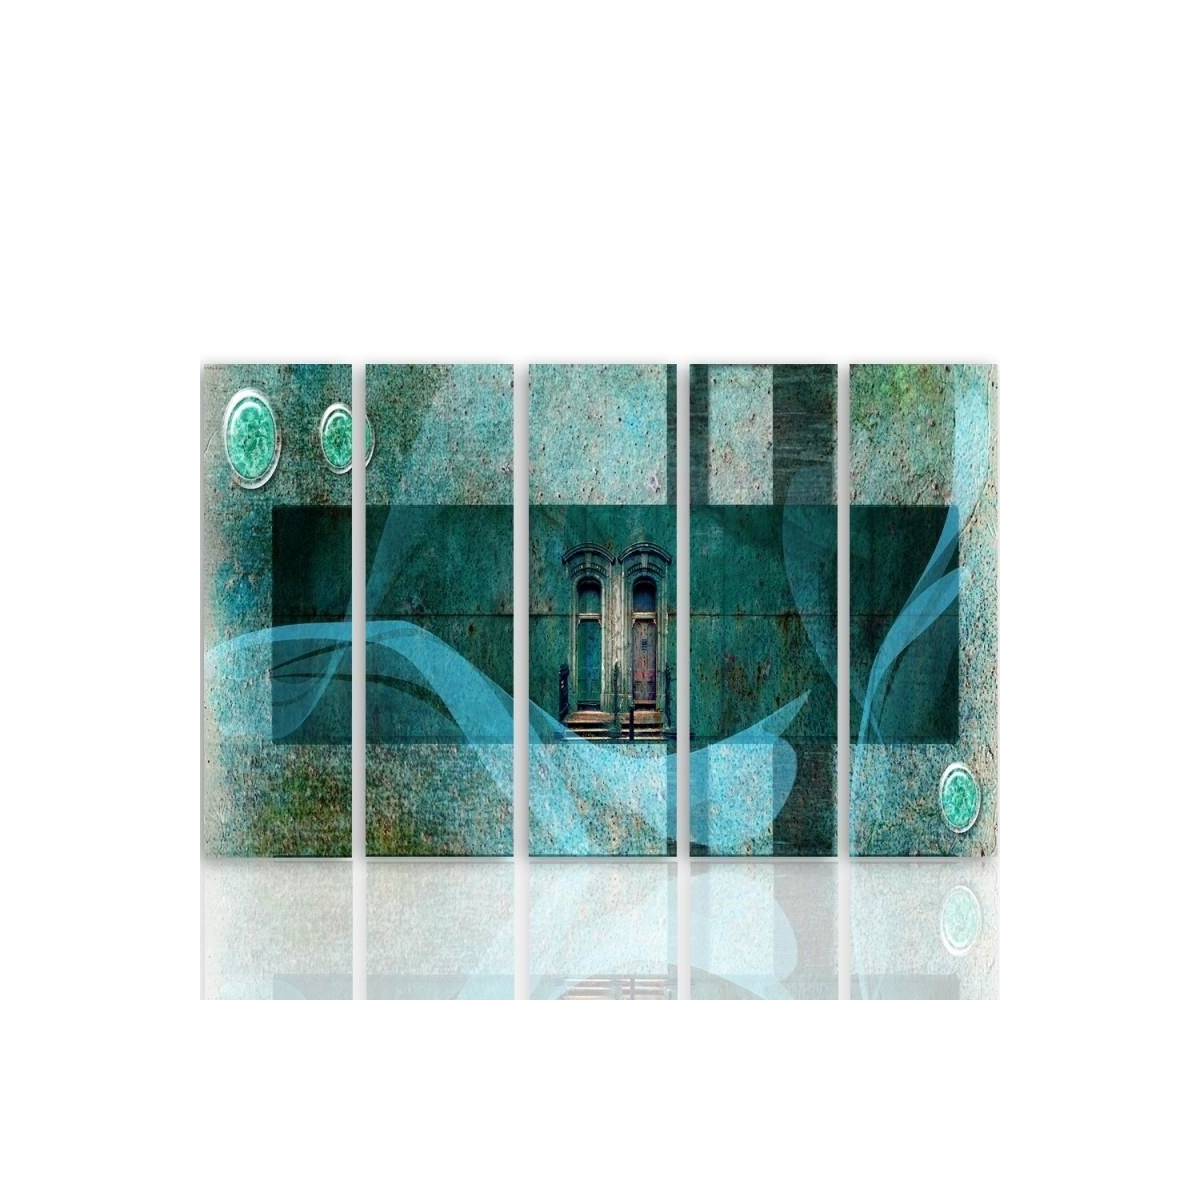 Five Part Picture On Canvas, Pentaptych, Type C, Architectural Motif100x150